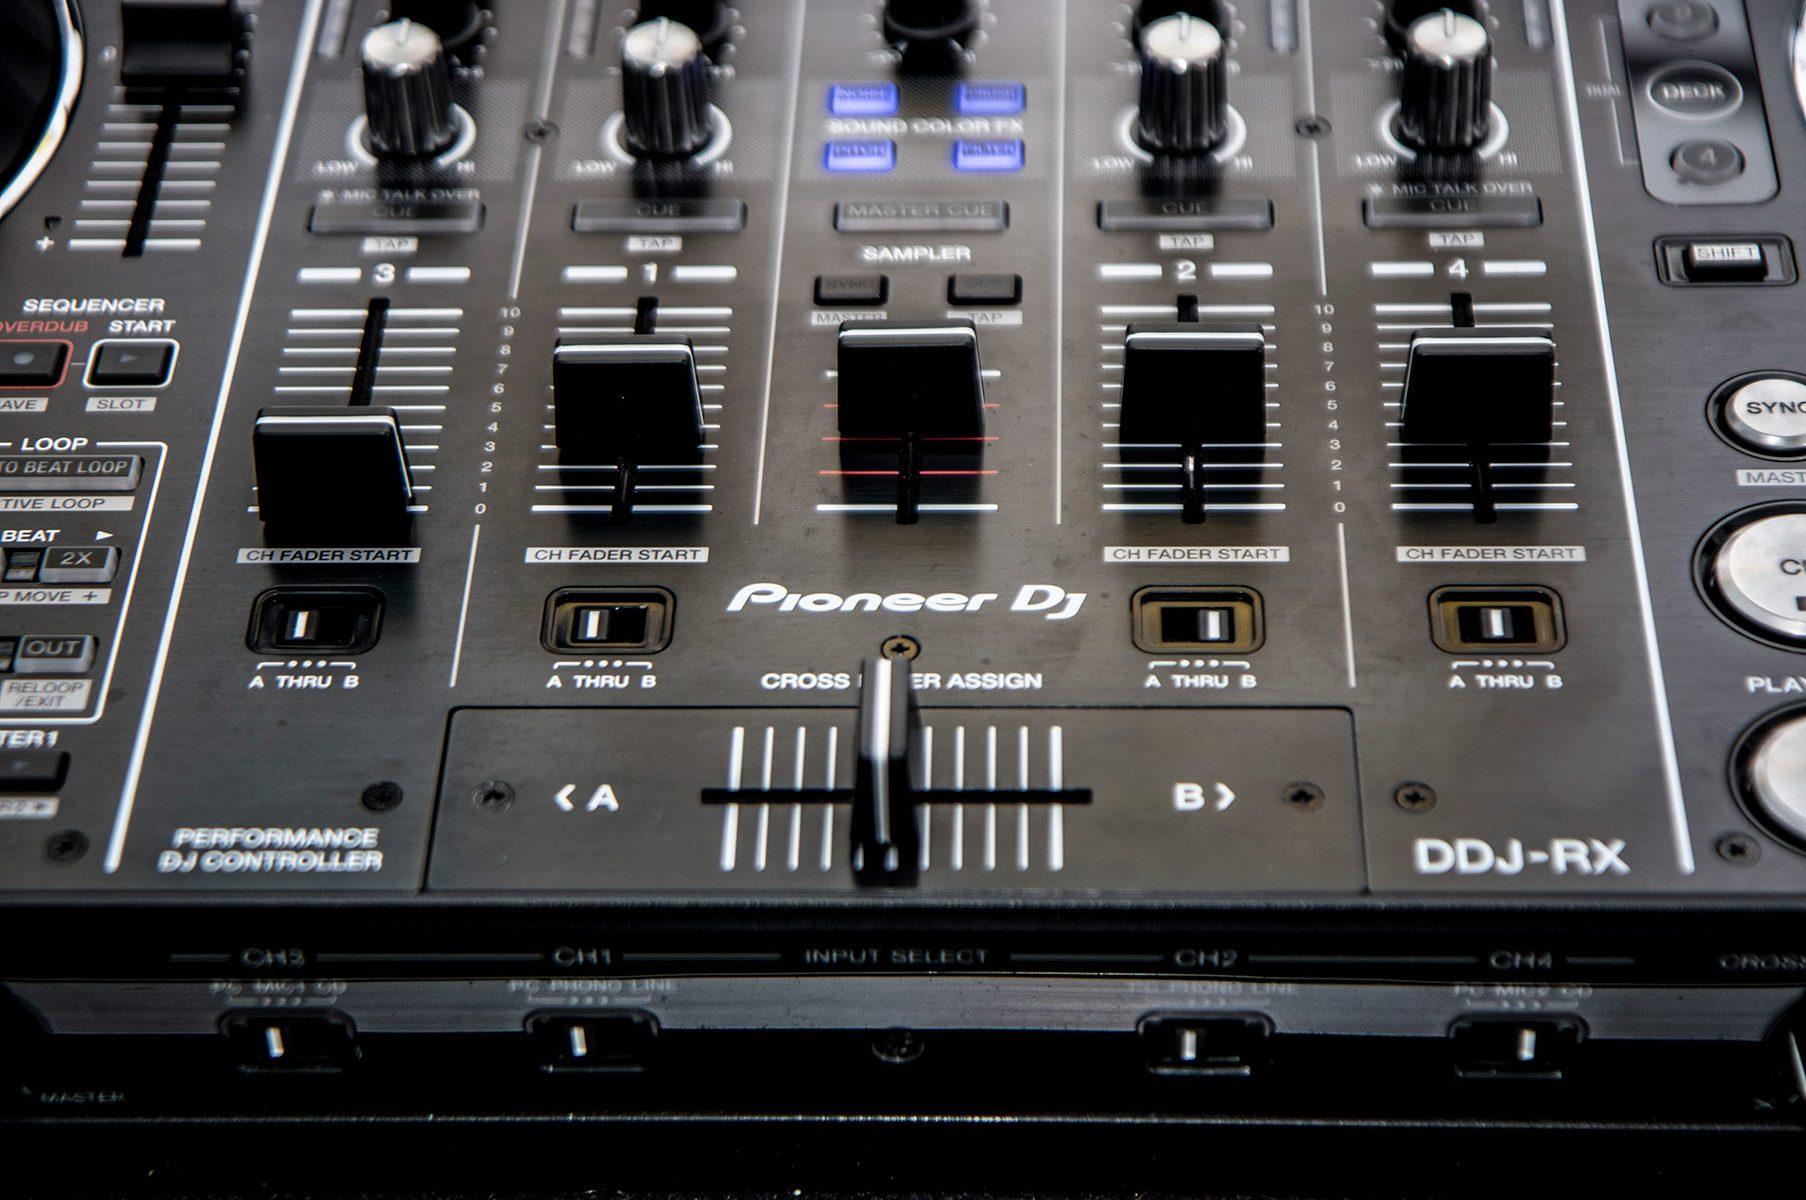 The DJ Booth Industry Standard Pioneer DDJ-RX Professional 4 -Channel controller